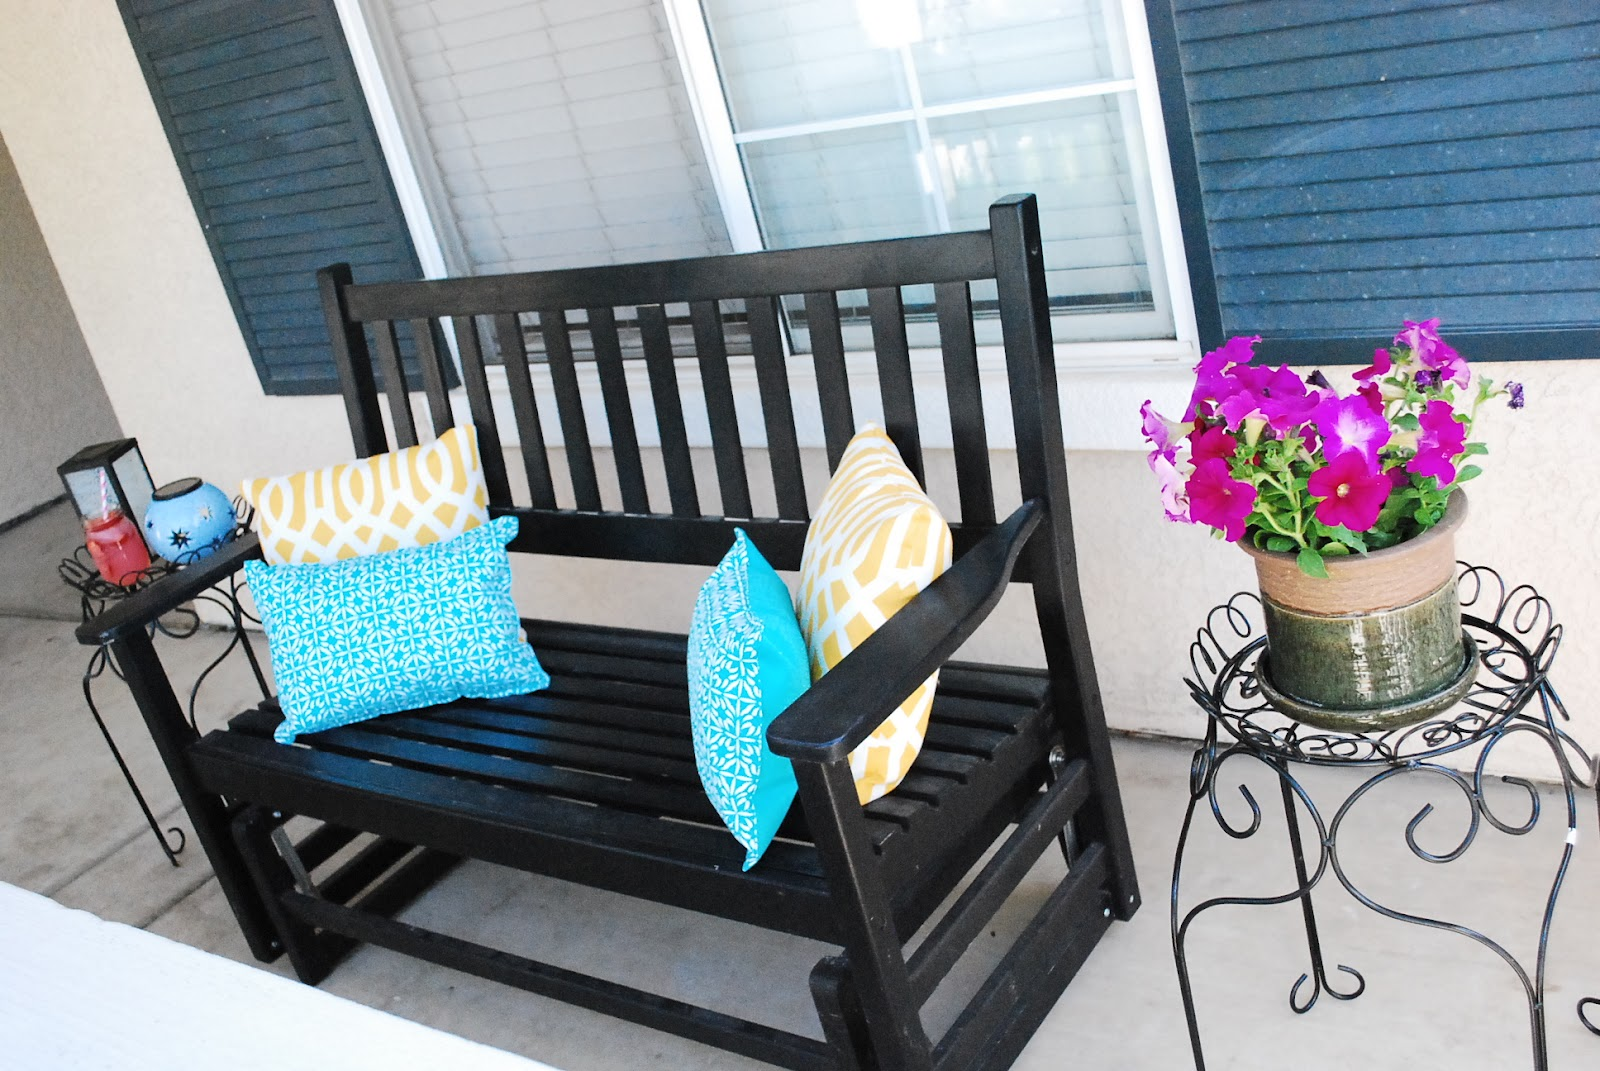 Patio Makeover On a Budget on Patio Makeovers On A Budget id=14147